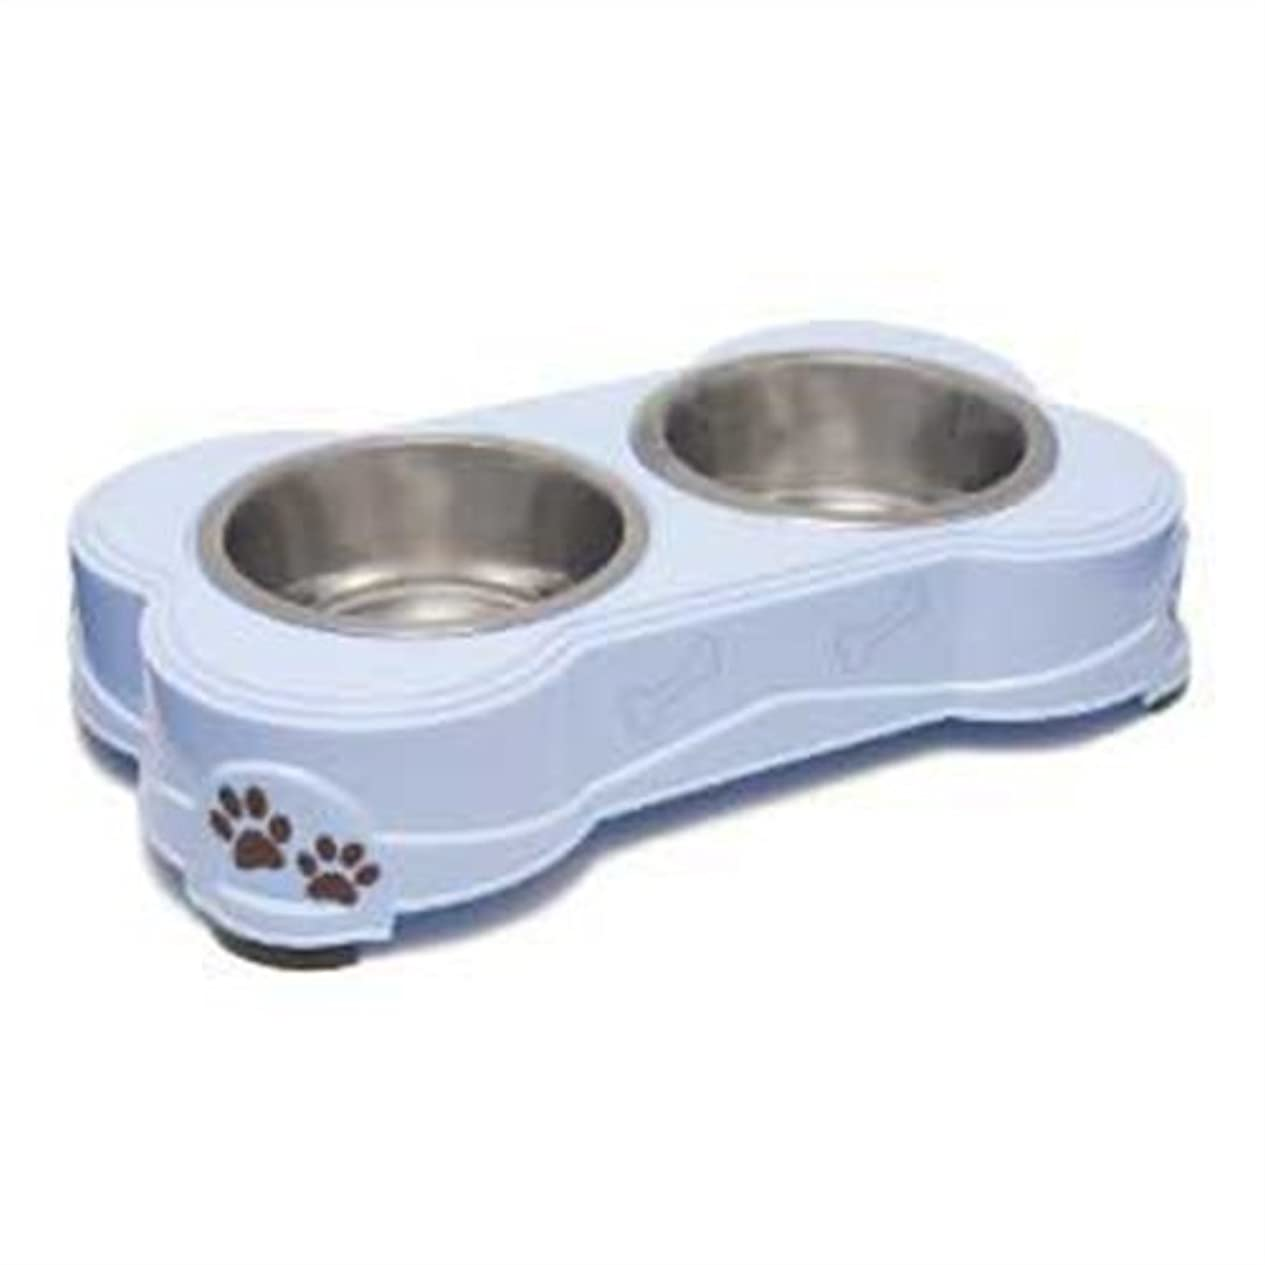 Loving Pets Dolce Diner Dog Bowl, Medium, 1 Quart, Murano ( 2 Bowl Set ) by Loving Pets